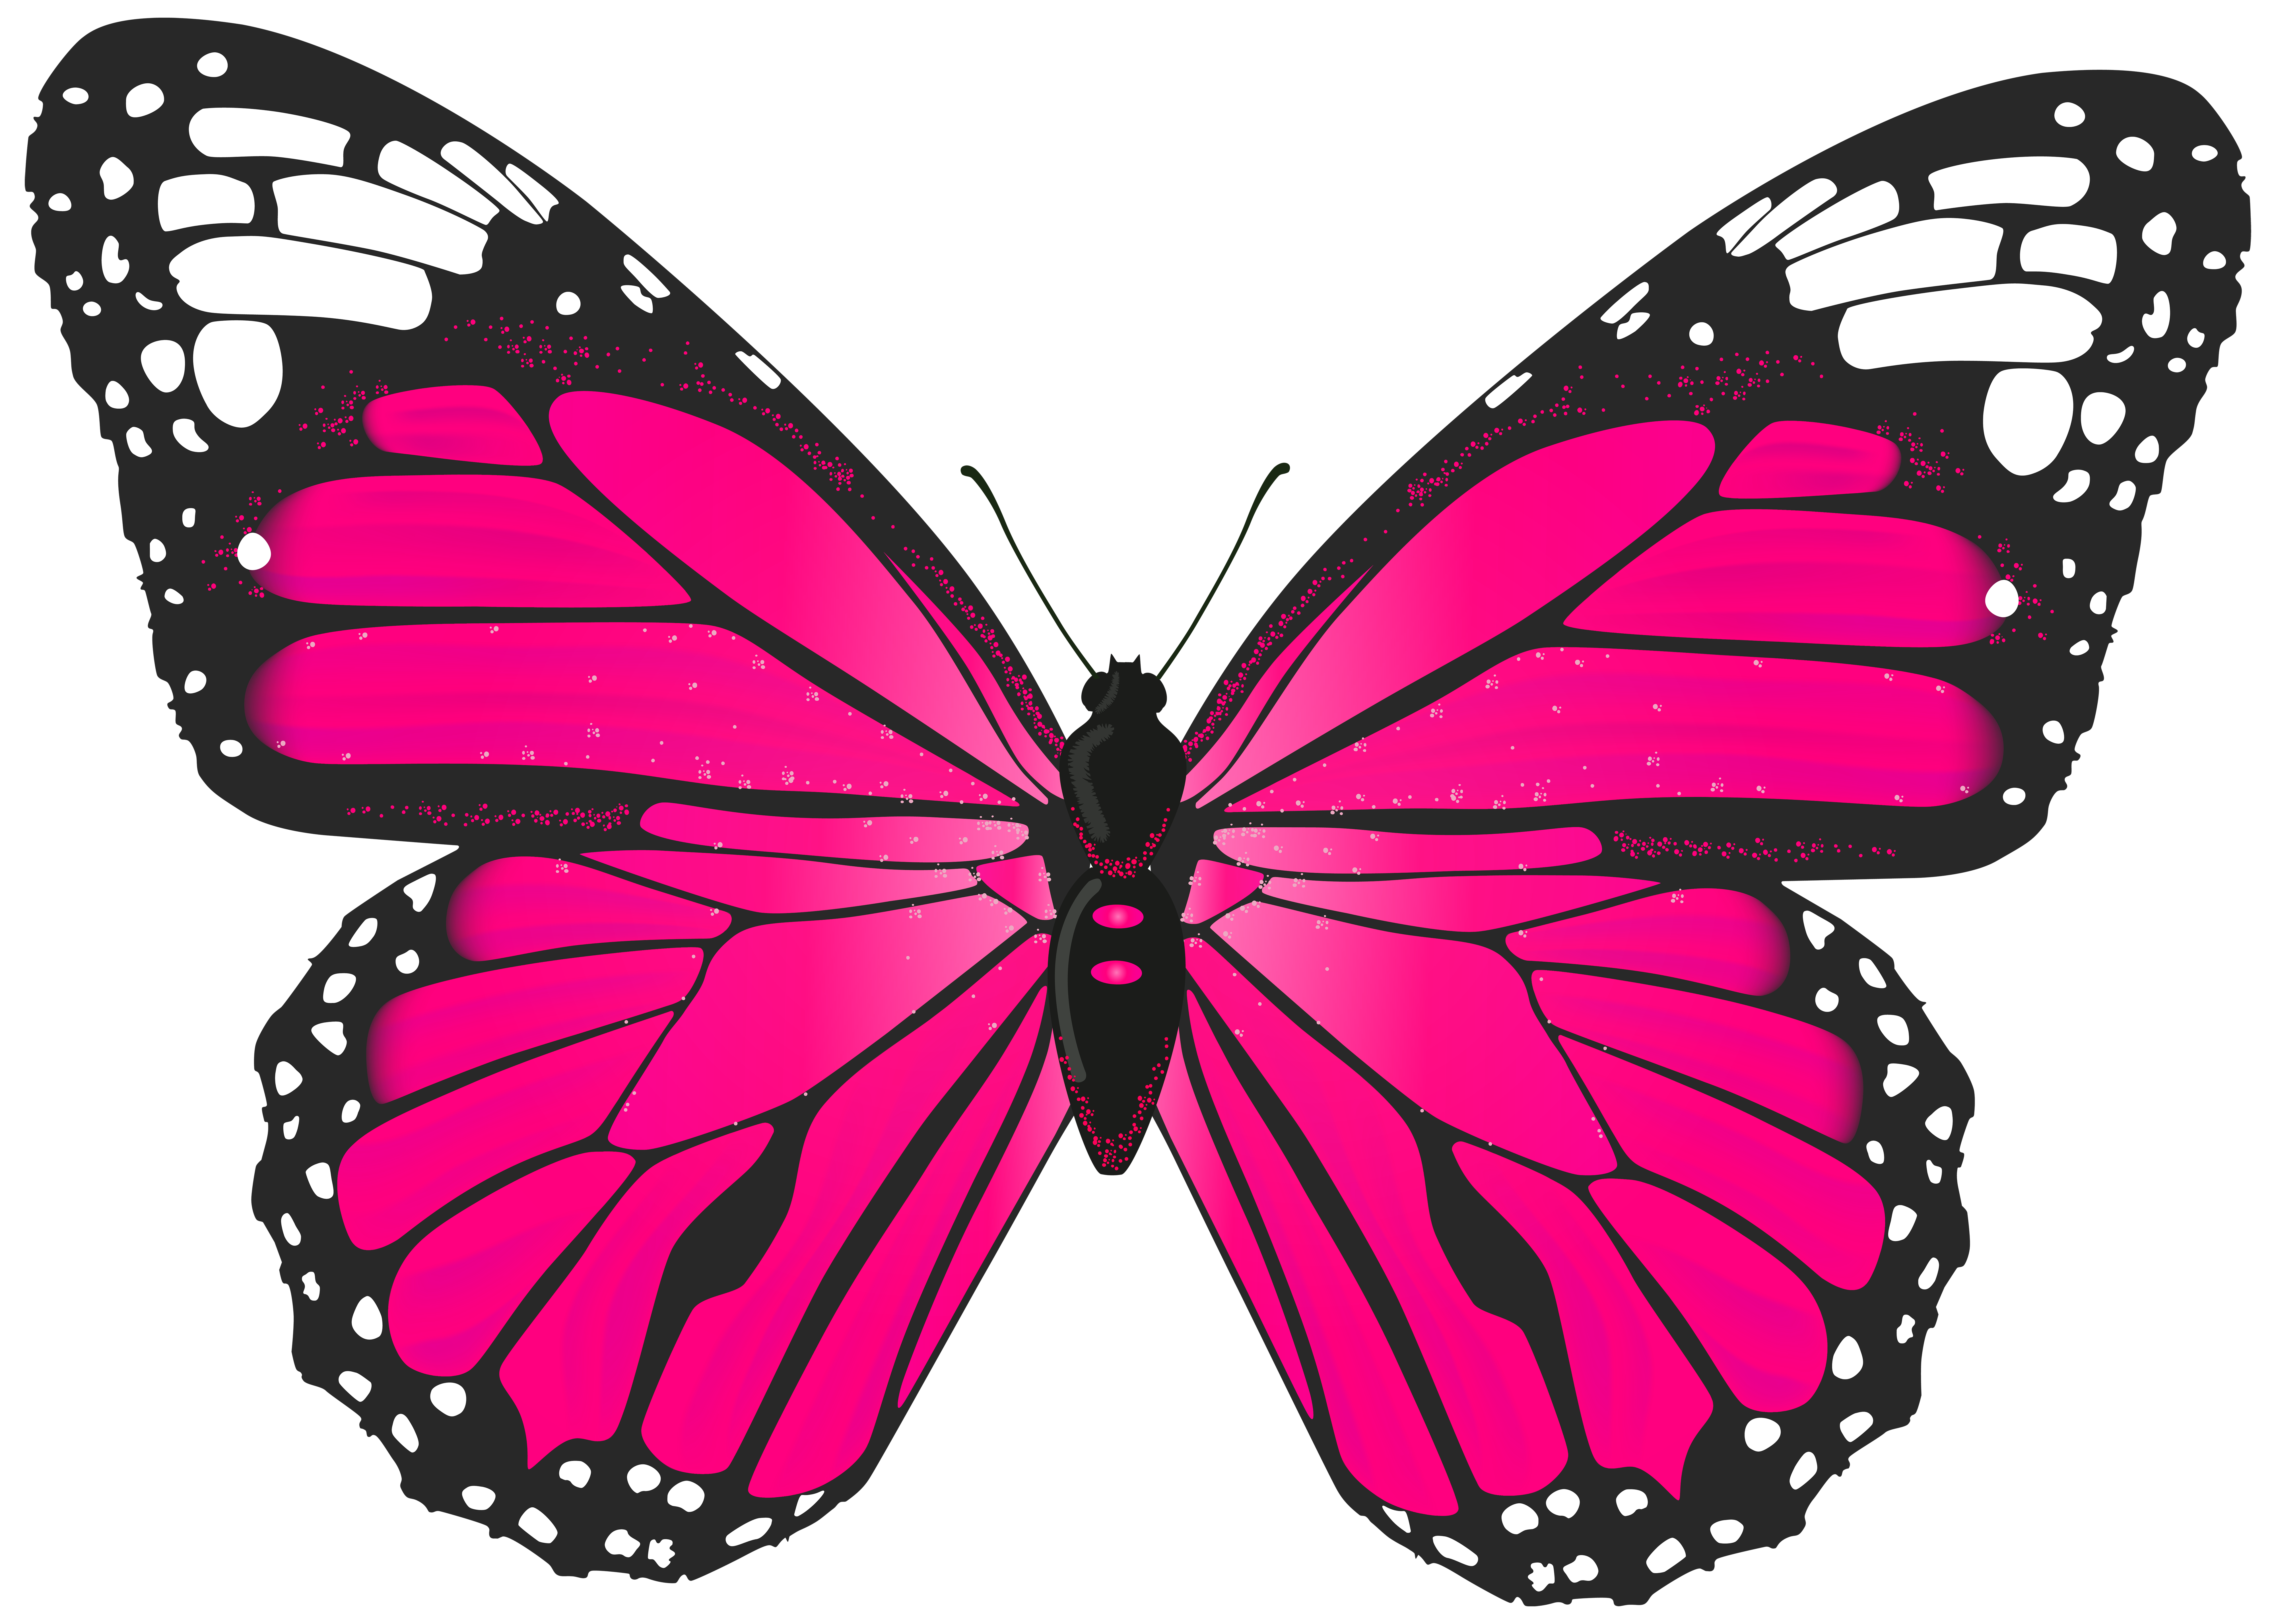 http://www.clipartbest.com/cliparts/9i4/oXK/9i4oXKr6T.png Pink Butterfly Graphics